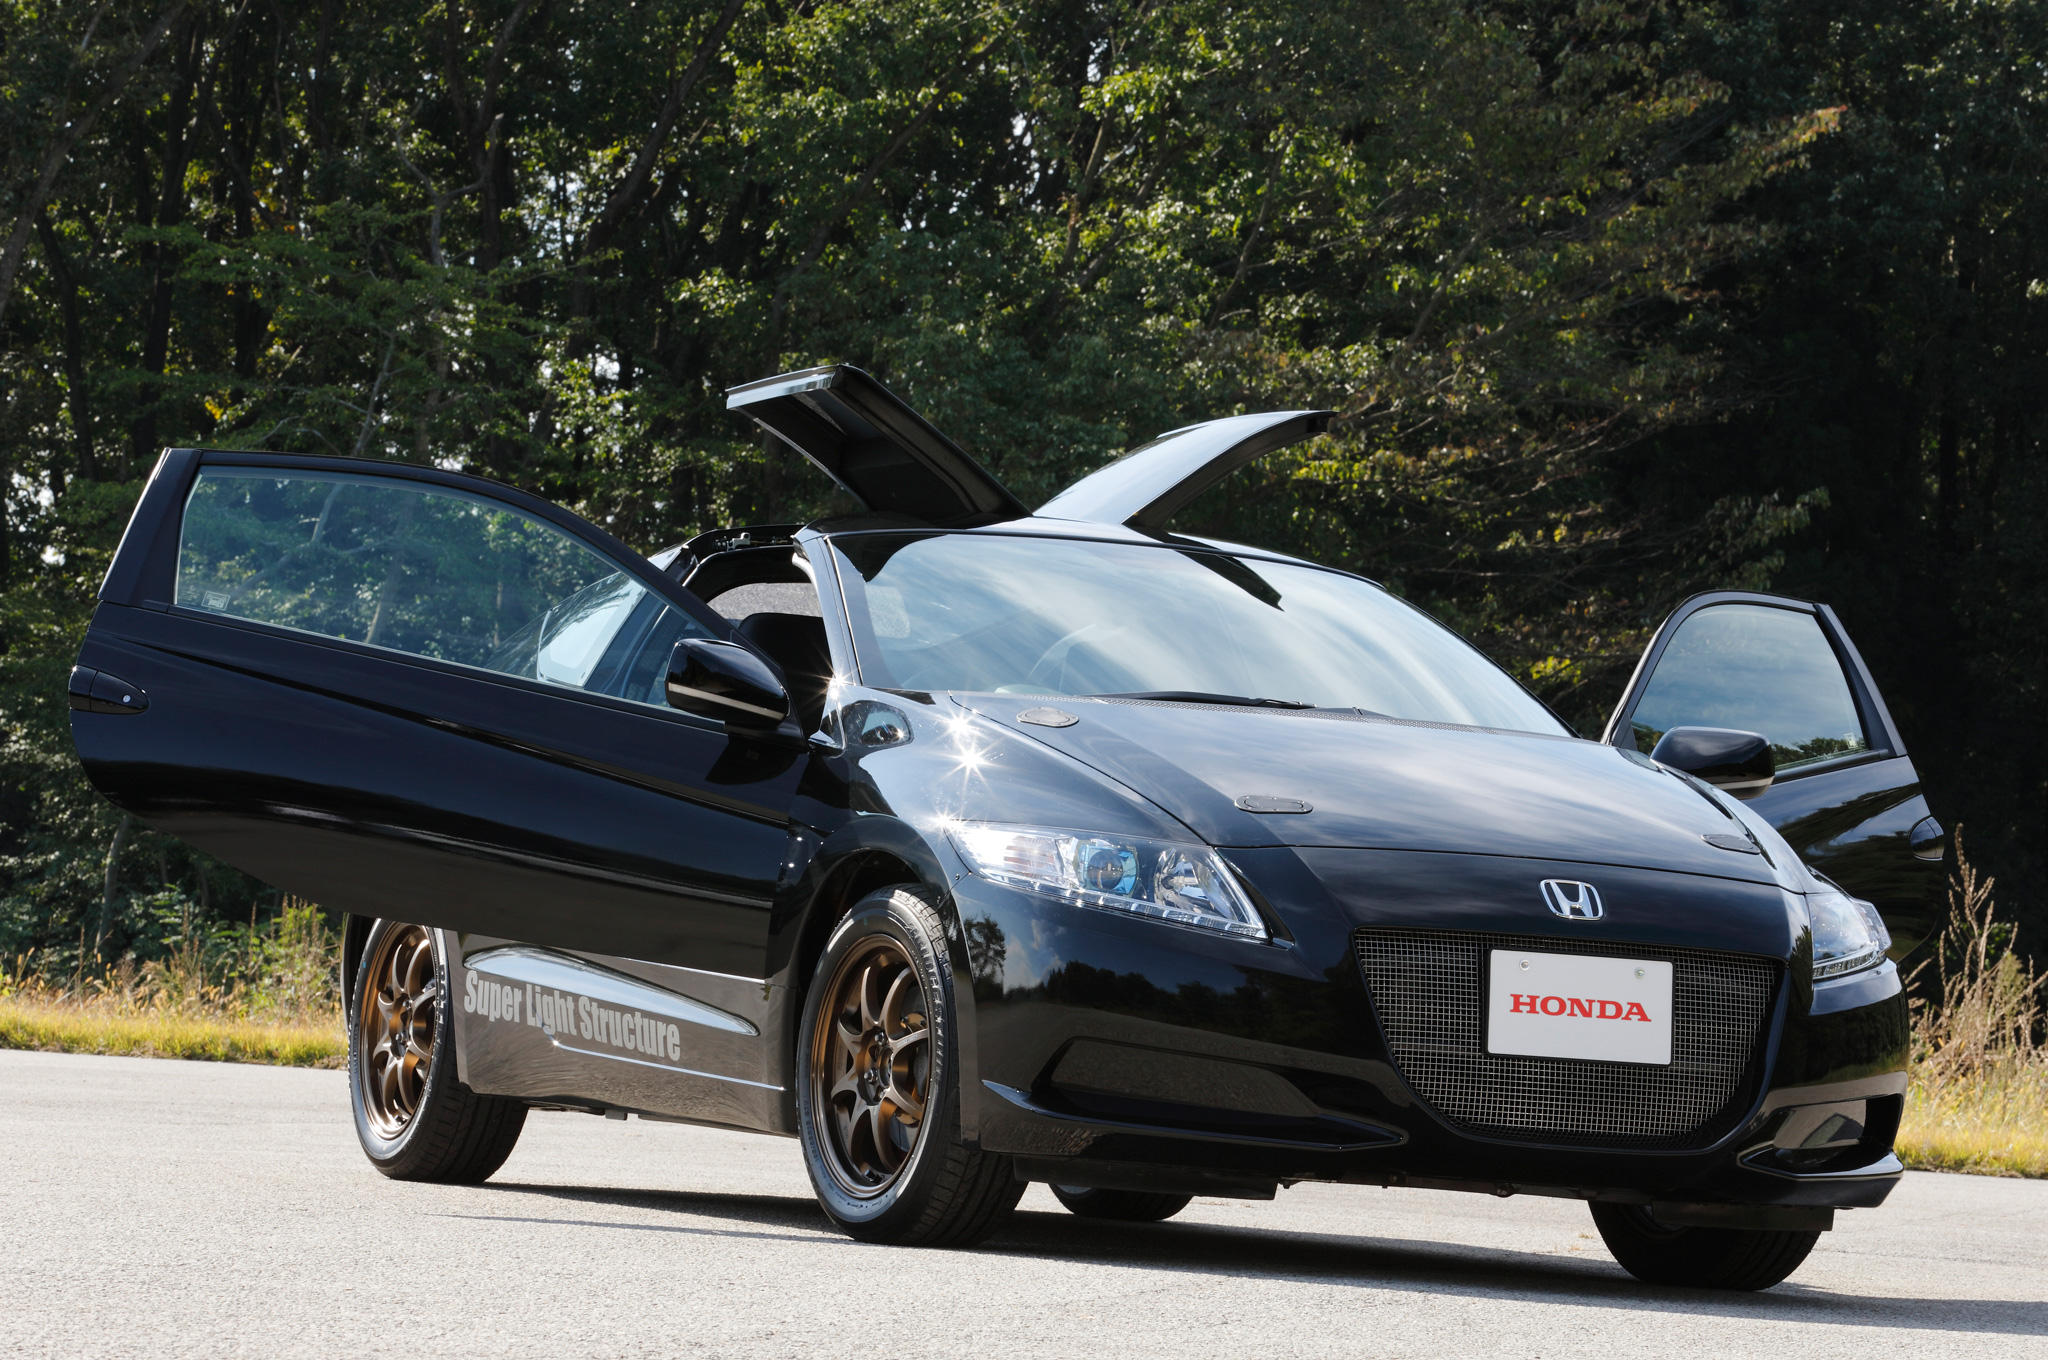 Honda-CR-Z-test-car-super-light-structure-front-view Cool Review About 2015 Cr Z with Captivating Pictures Cars Review